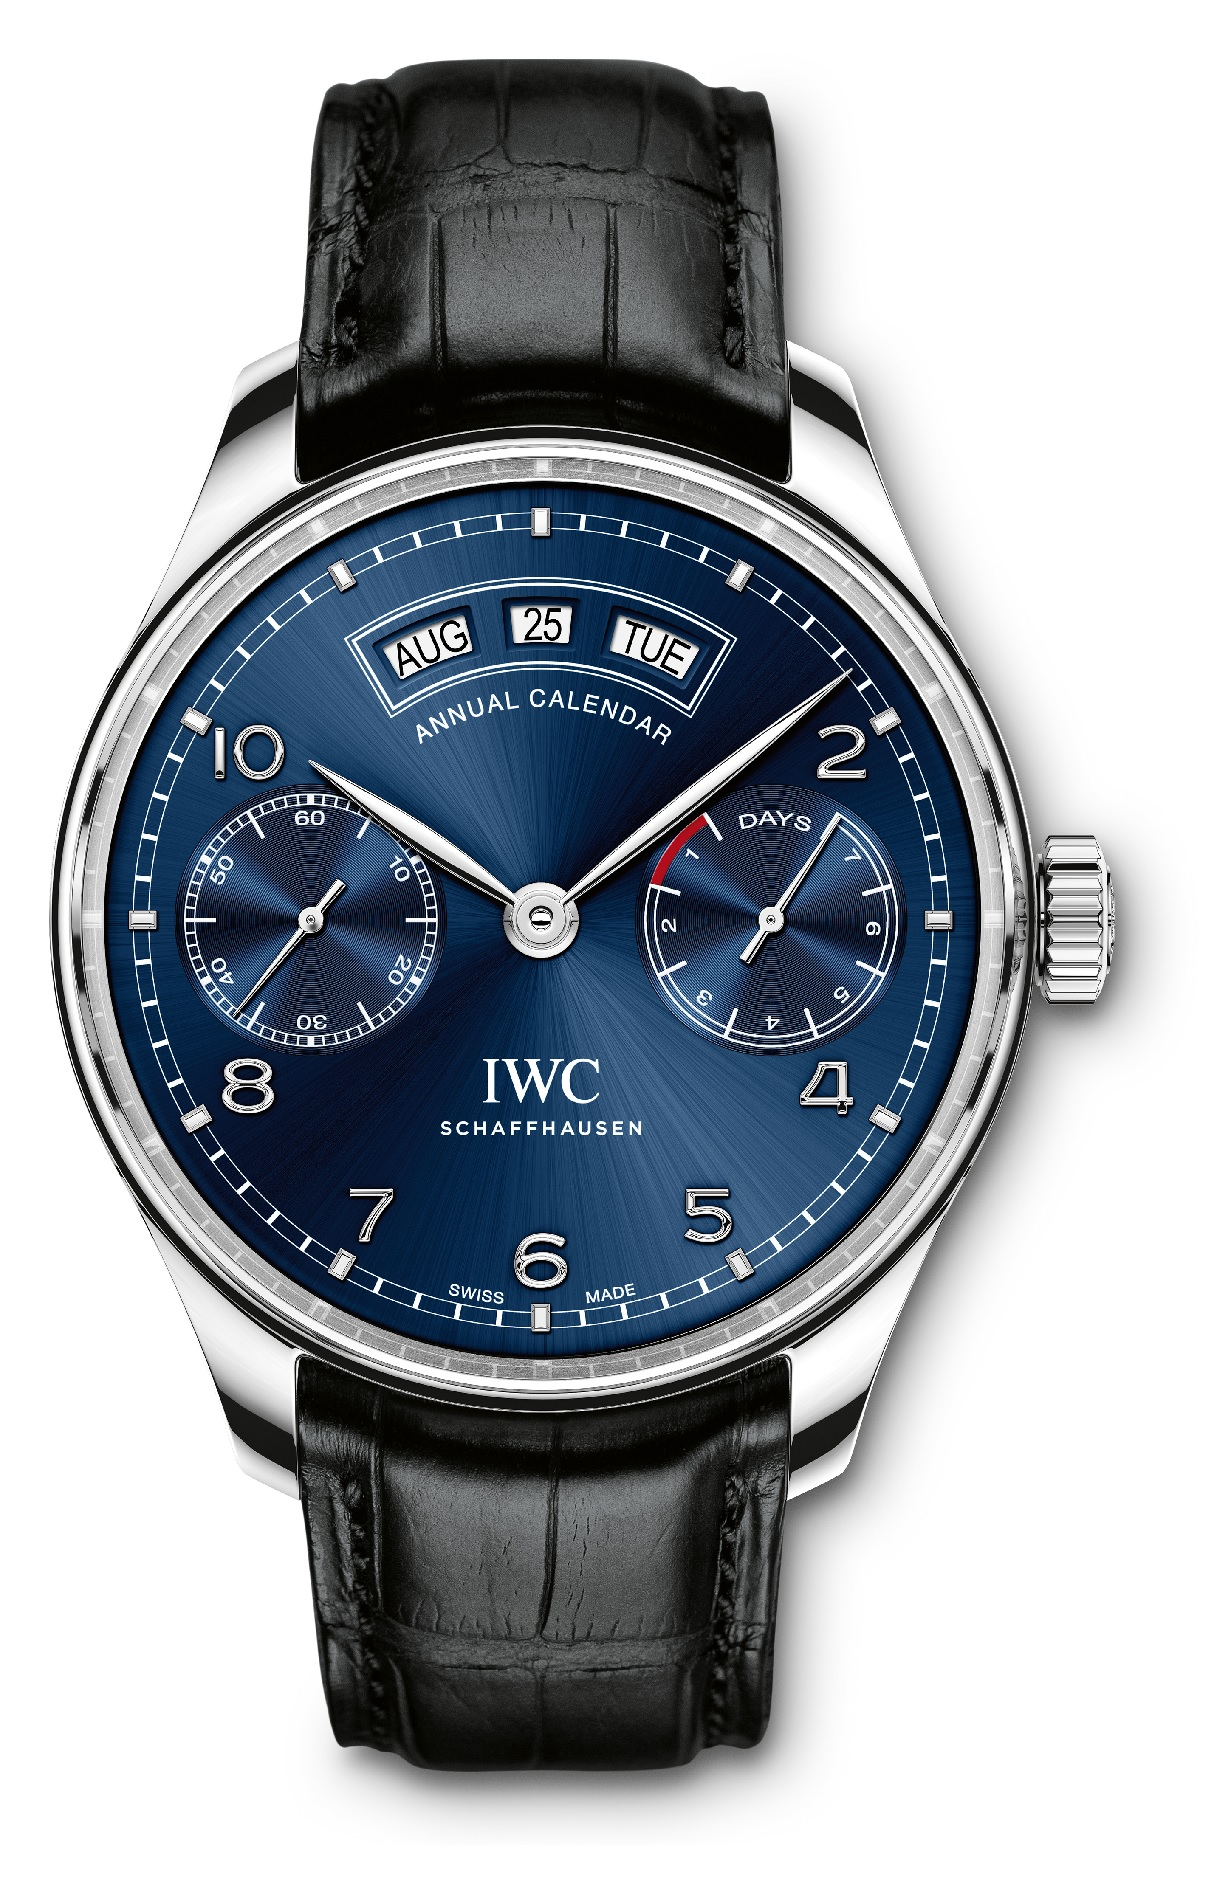 The new IWC Portugieser Annual Calendar